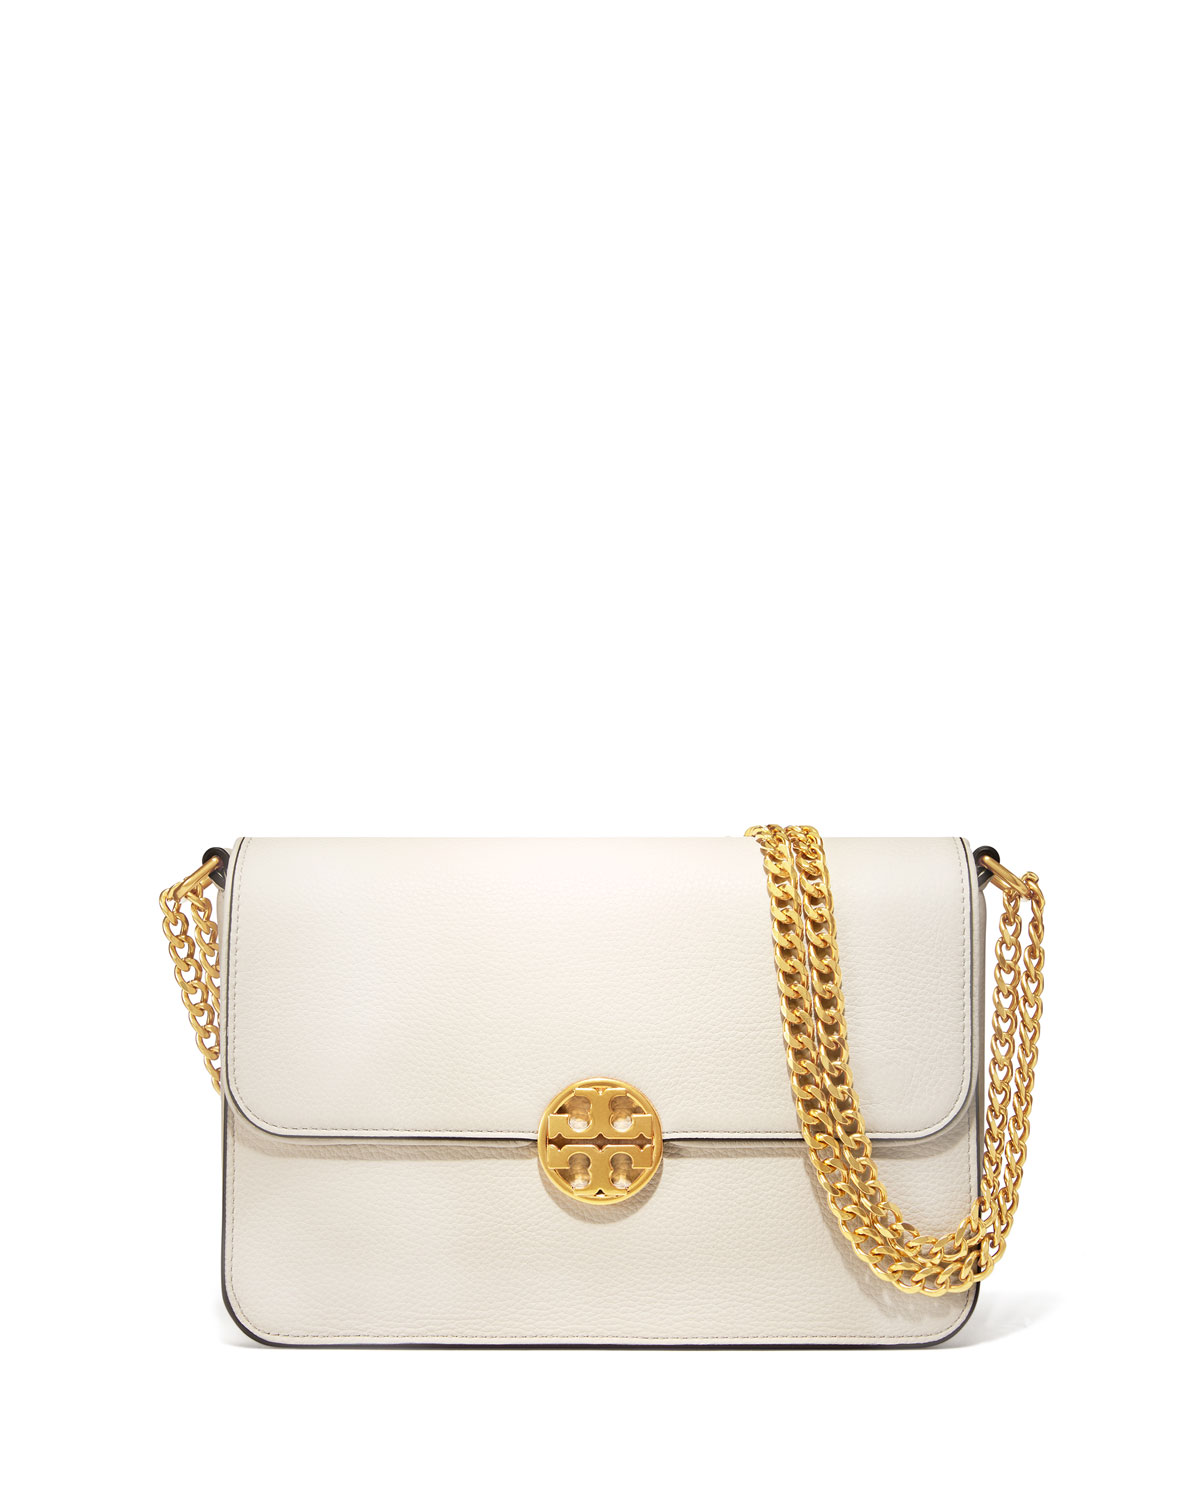 0a1b7cedb31e Tory Burch Chelsea Chain Shoulder Bag